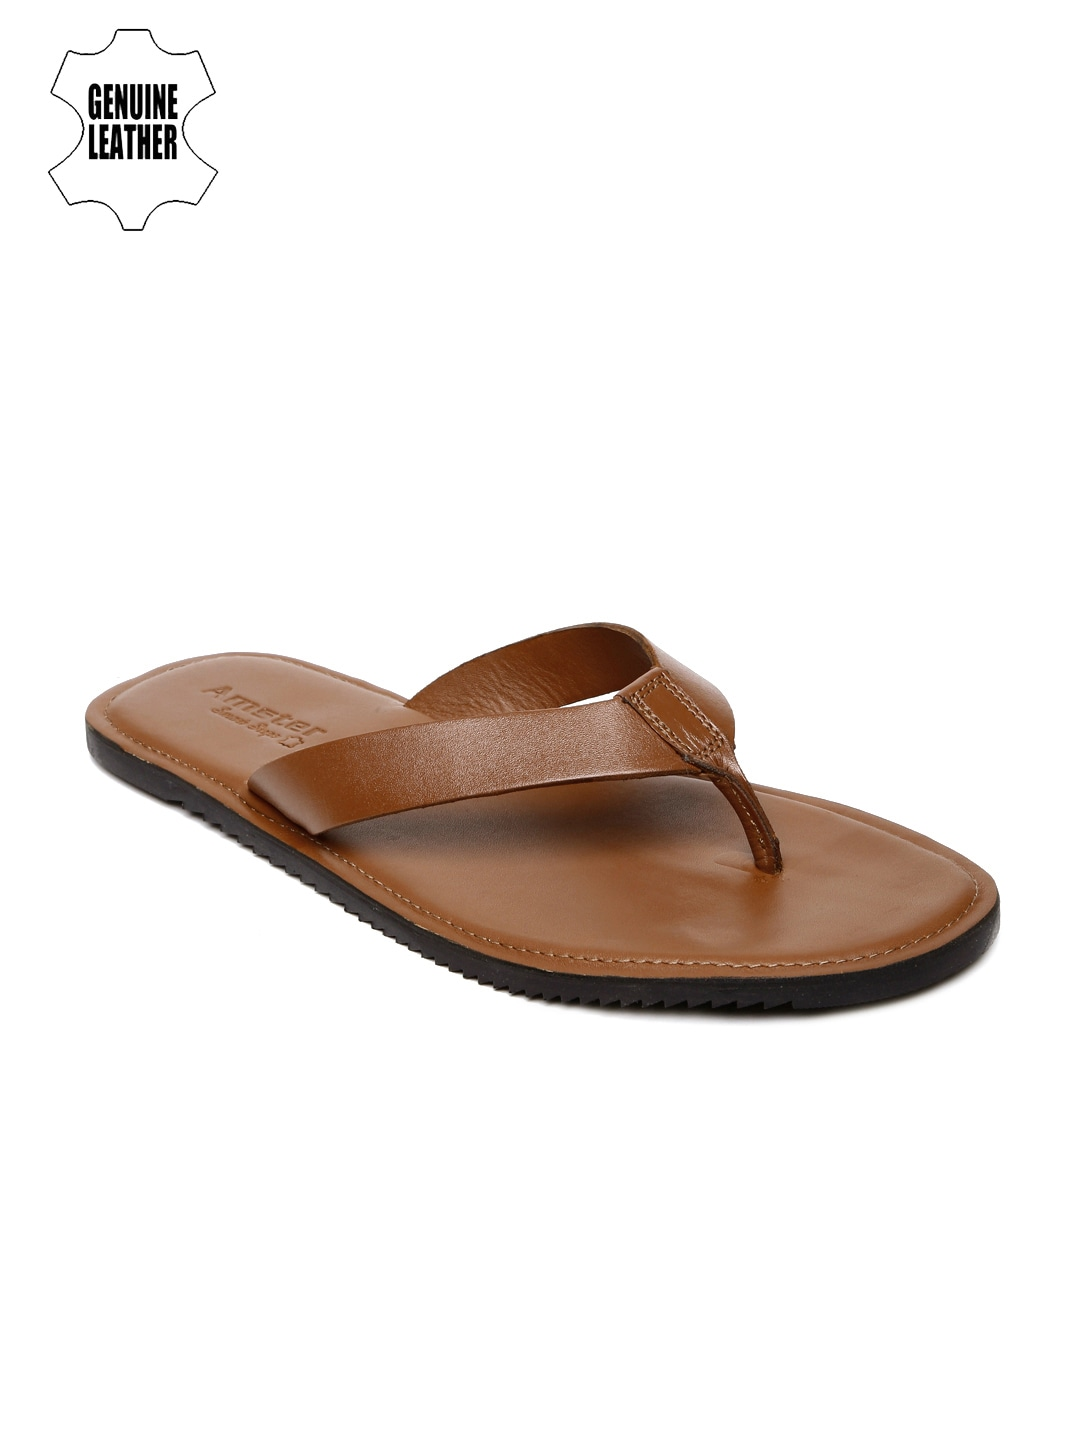 Tan Brown Genuine Leather Sandals